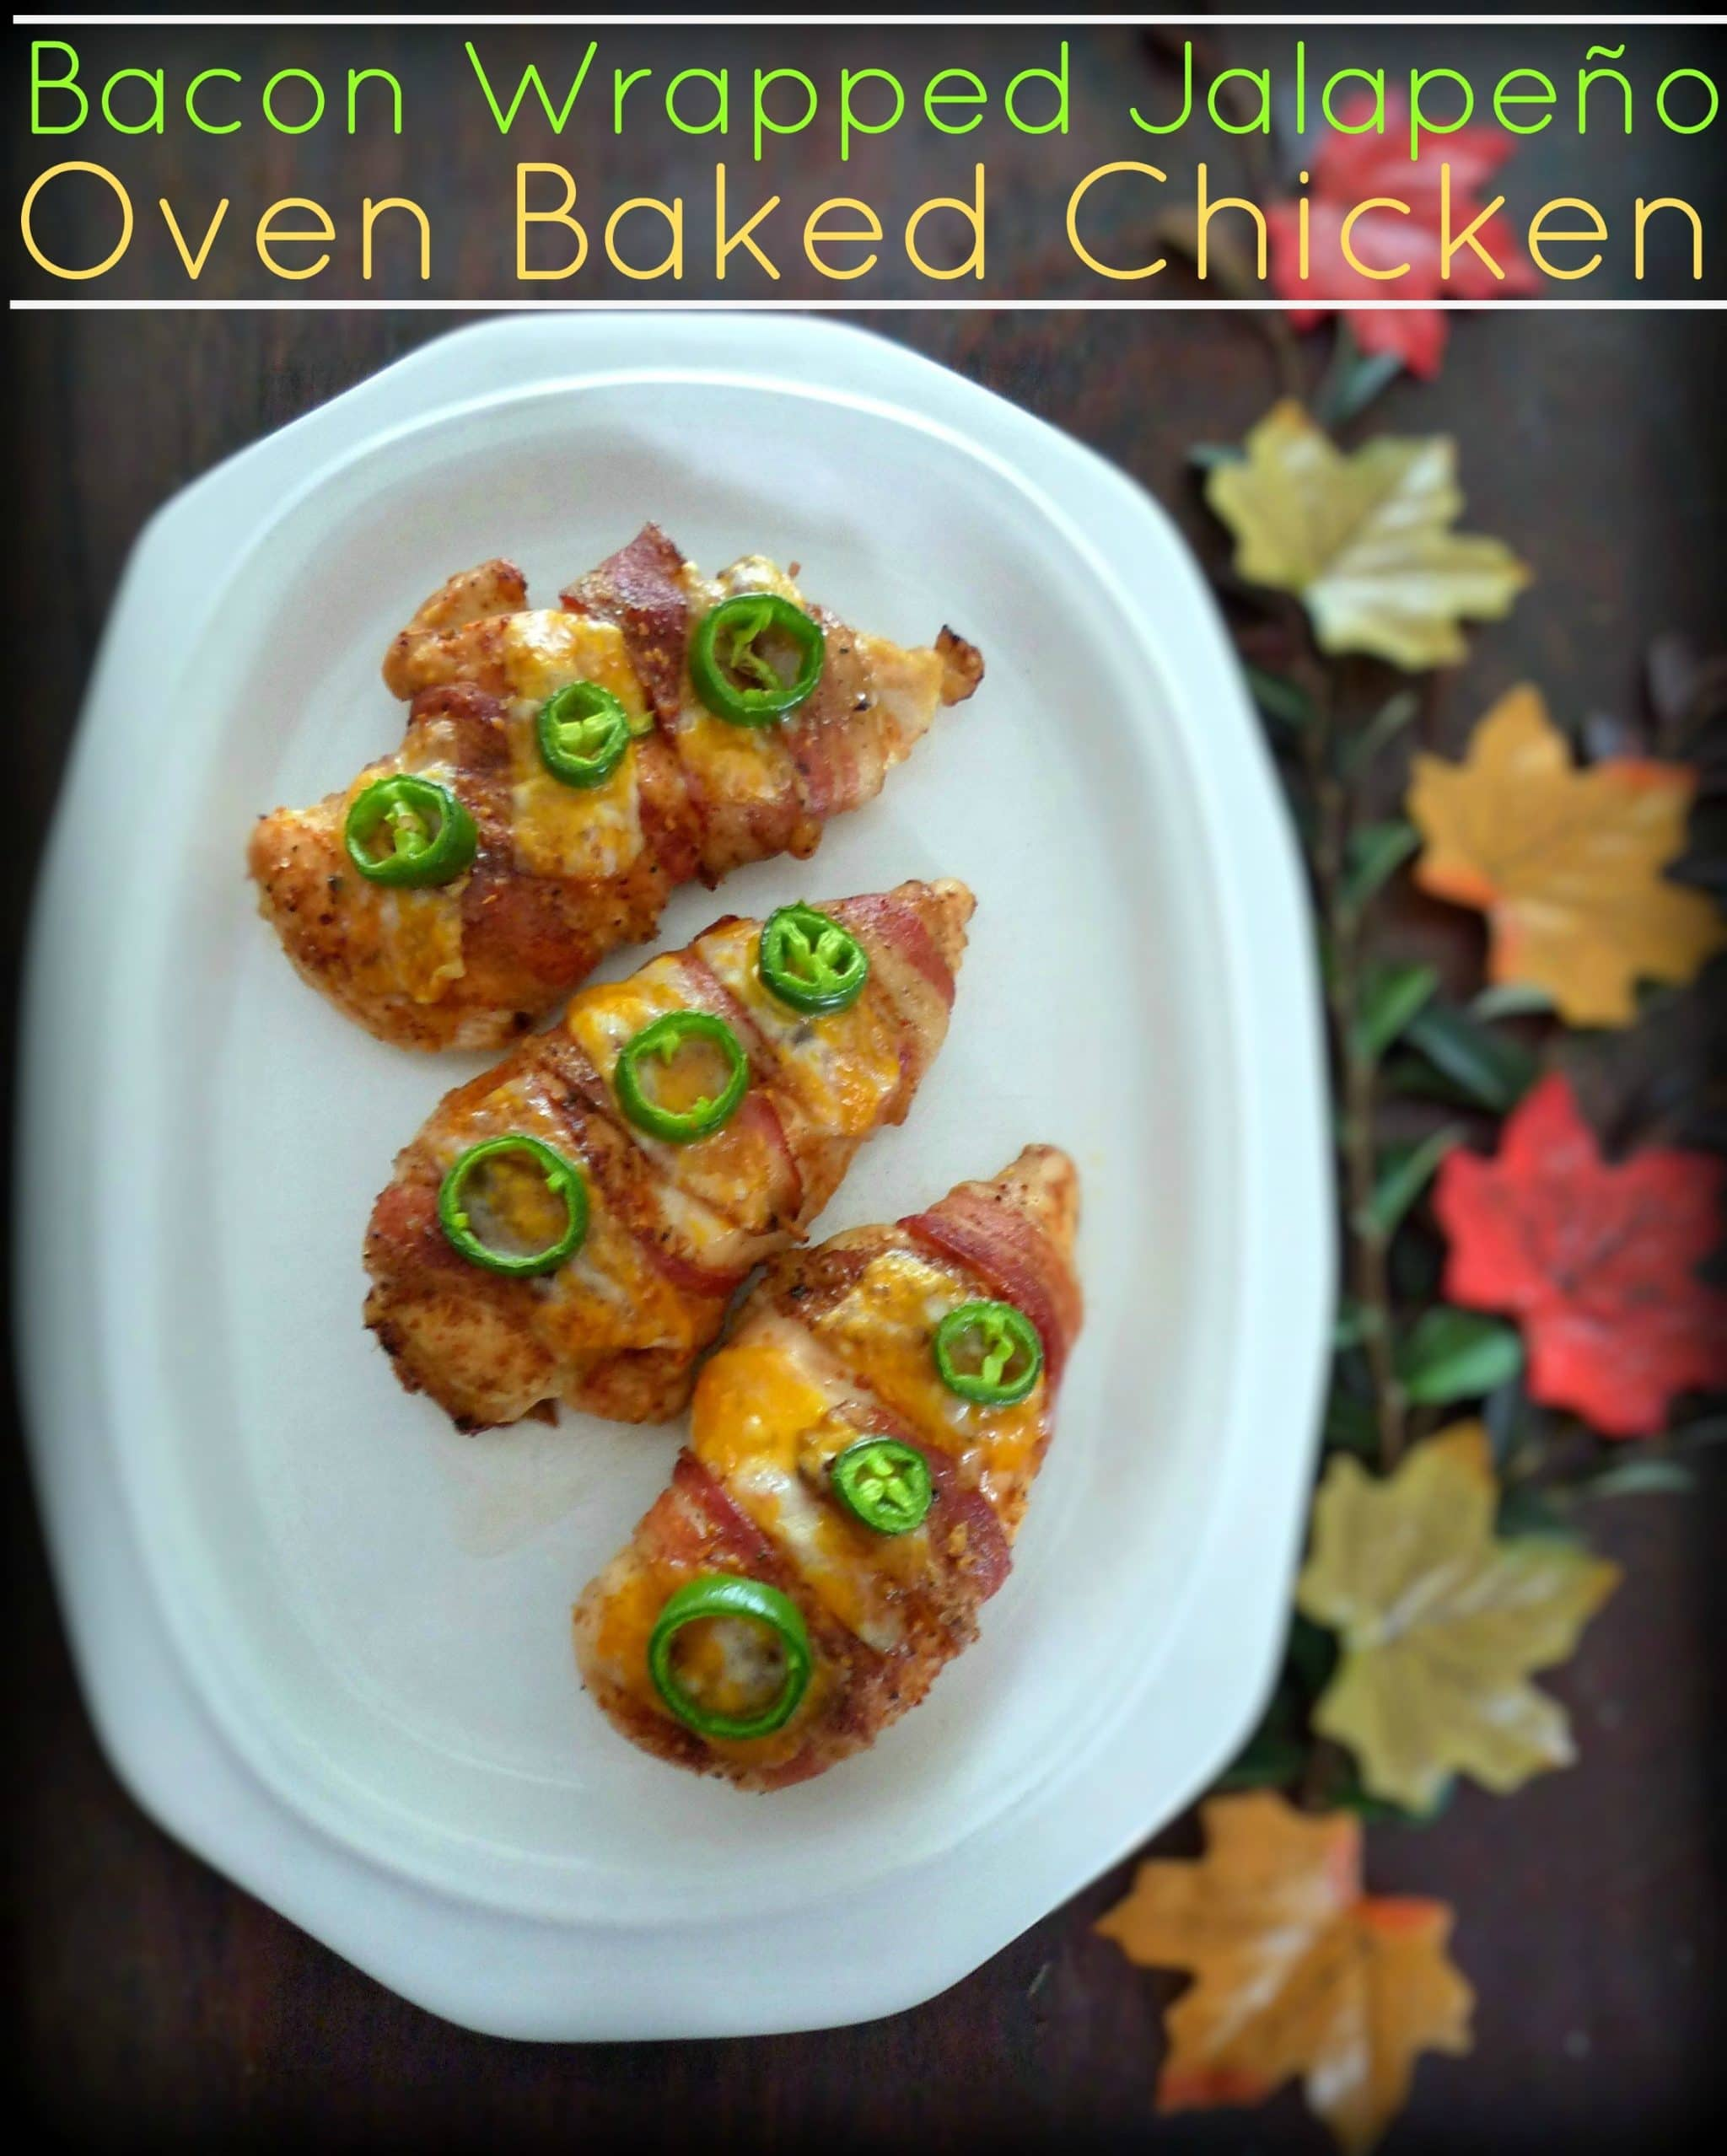 #Bacon wrapped #Jalapeno #ovenbaked #chicken #tailgate #football #tailgateparty #footballparty #gameday #howto